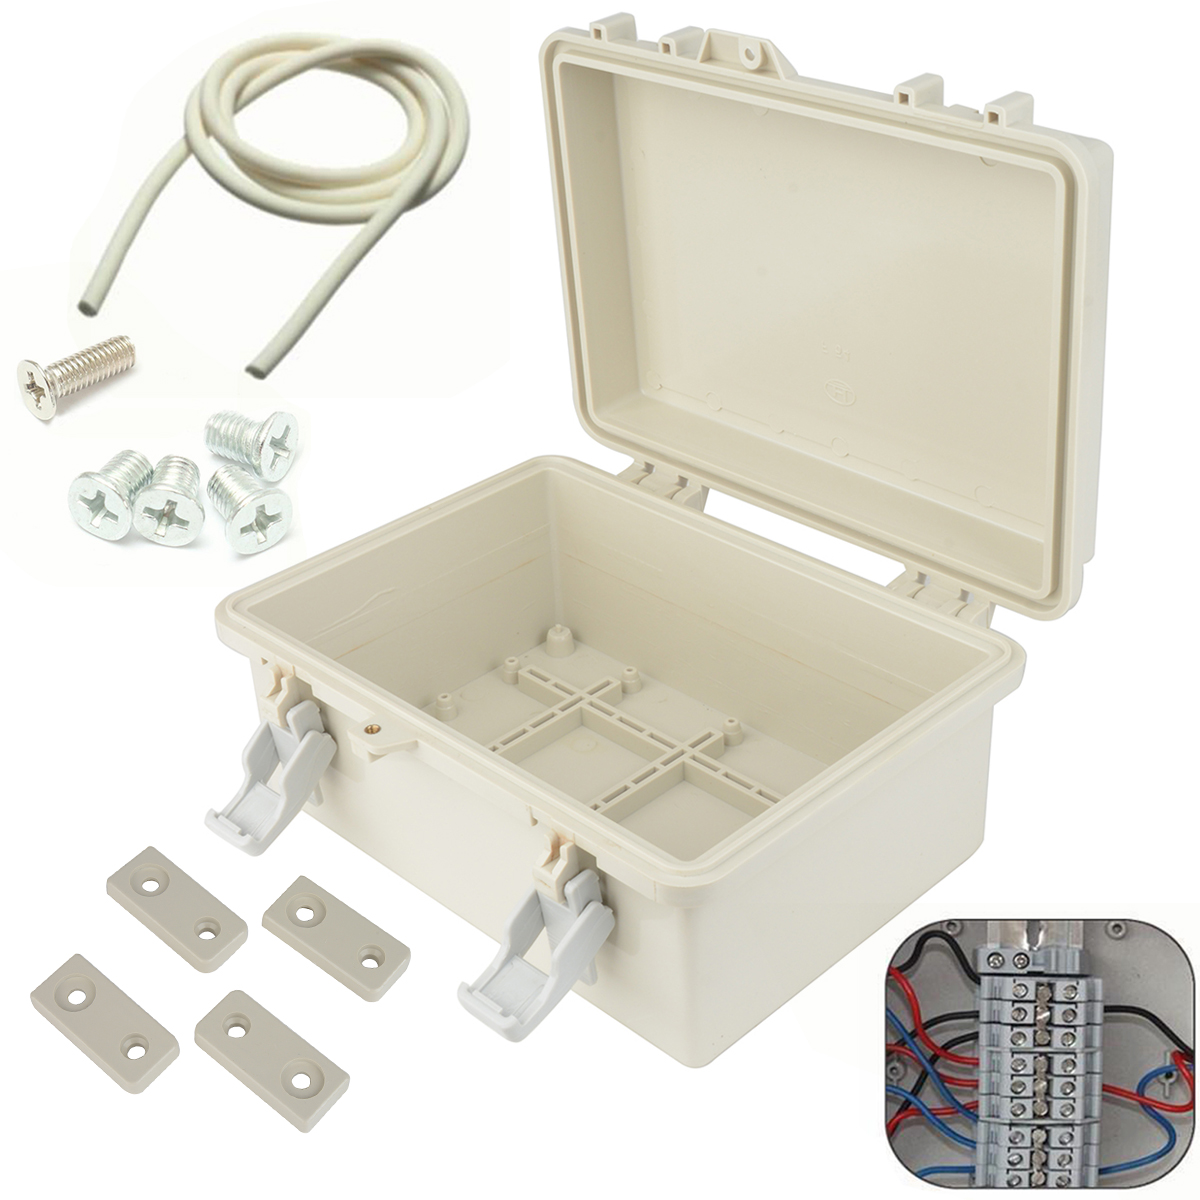 1pc Waterproof Electronic Junction Box Plastic Enclosure Instrument Case Outdoor Terminal Cable Electrical Connector Mayitr